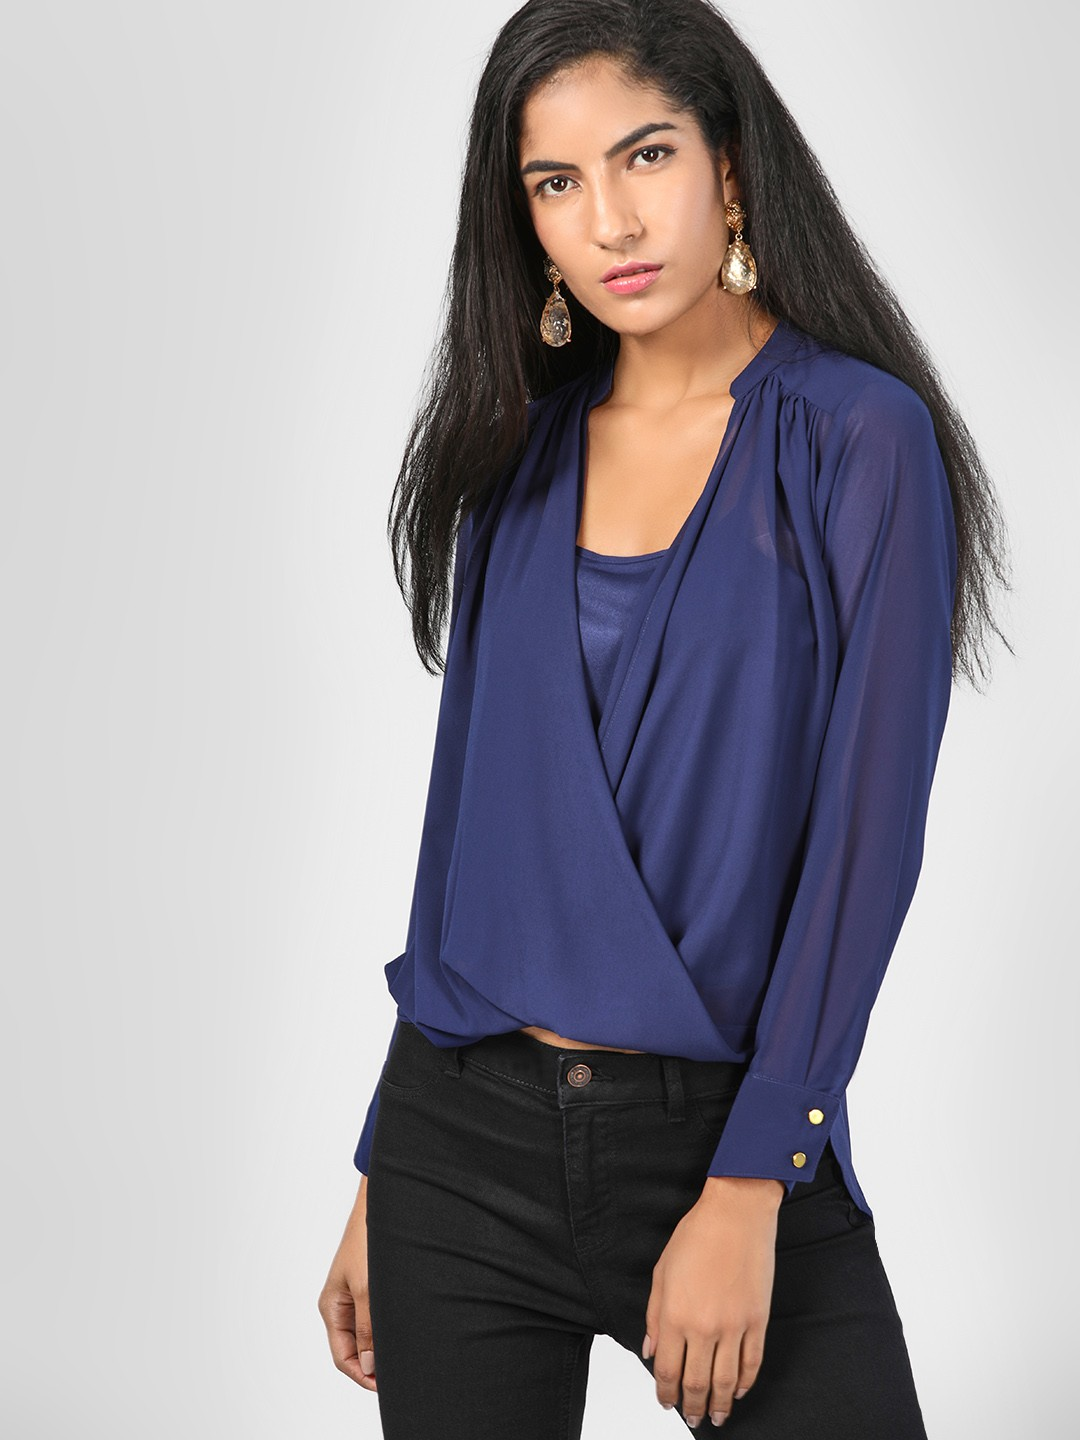 SCULLERS FOR HER Navy Plunge V-Neck Top 1